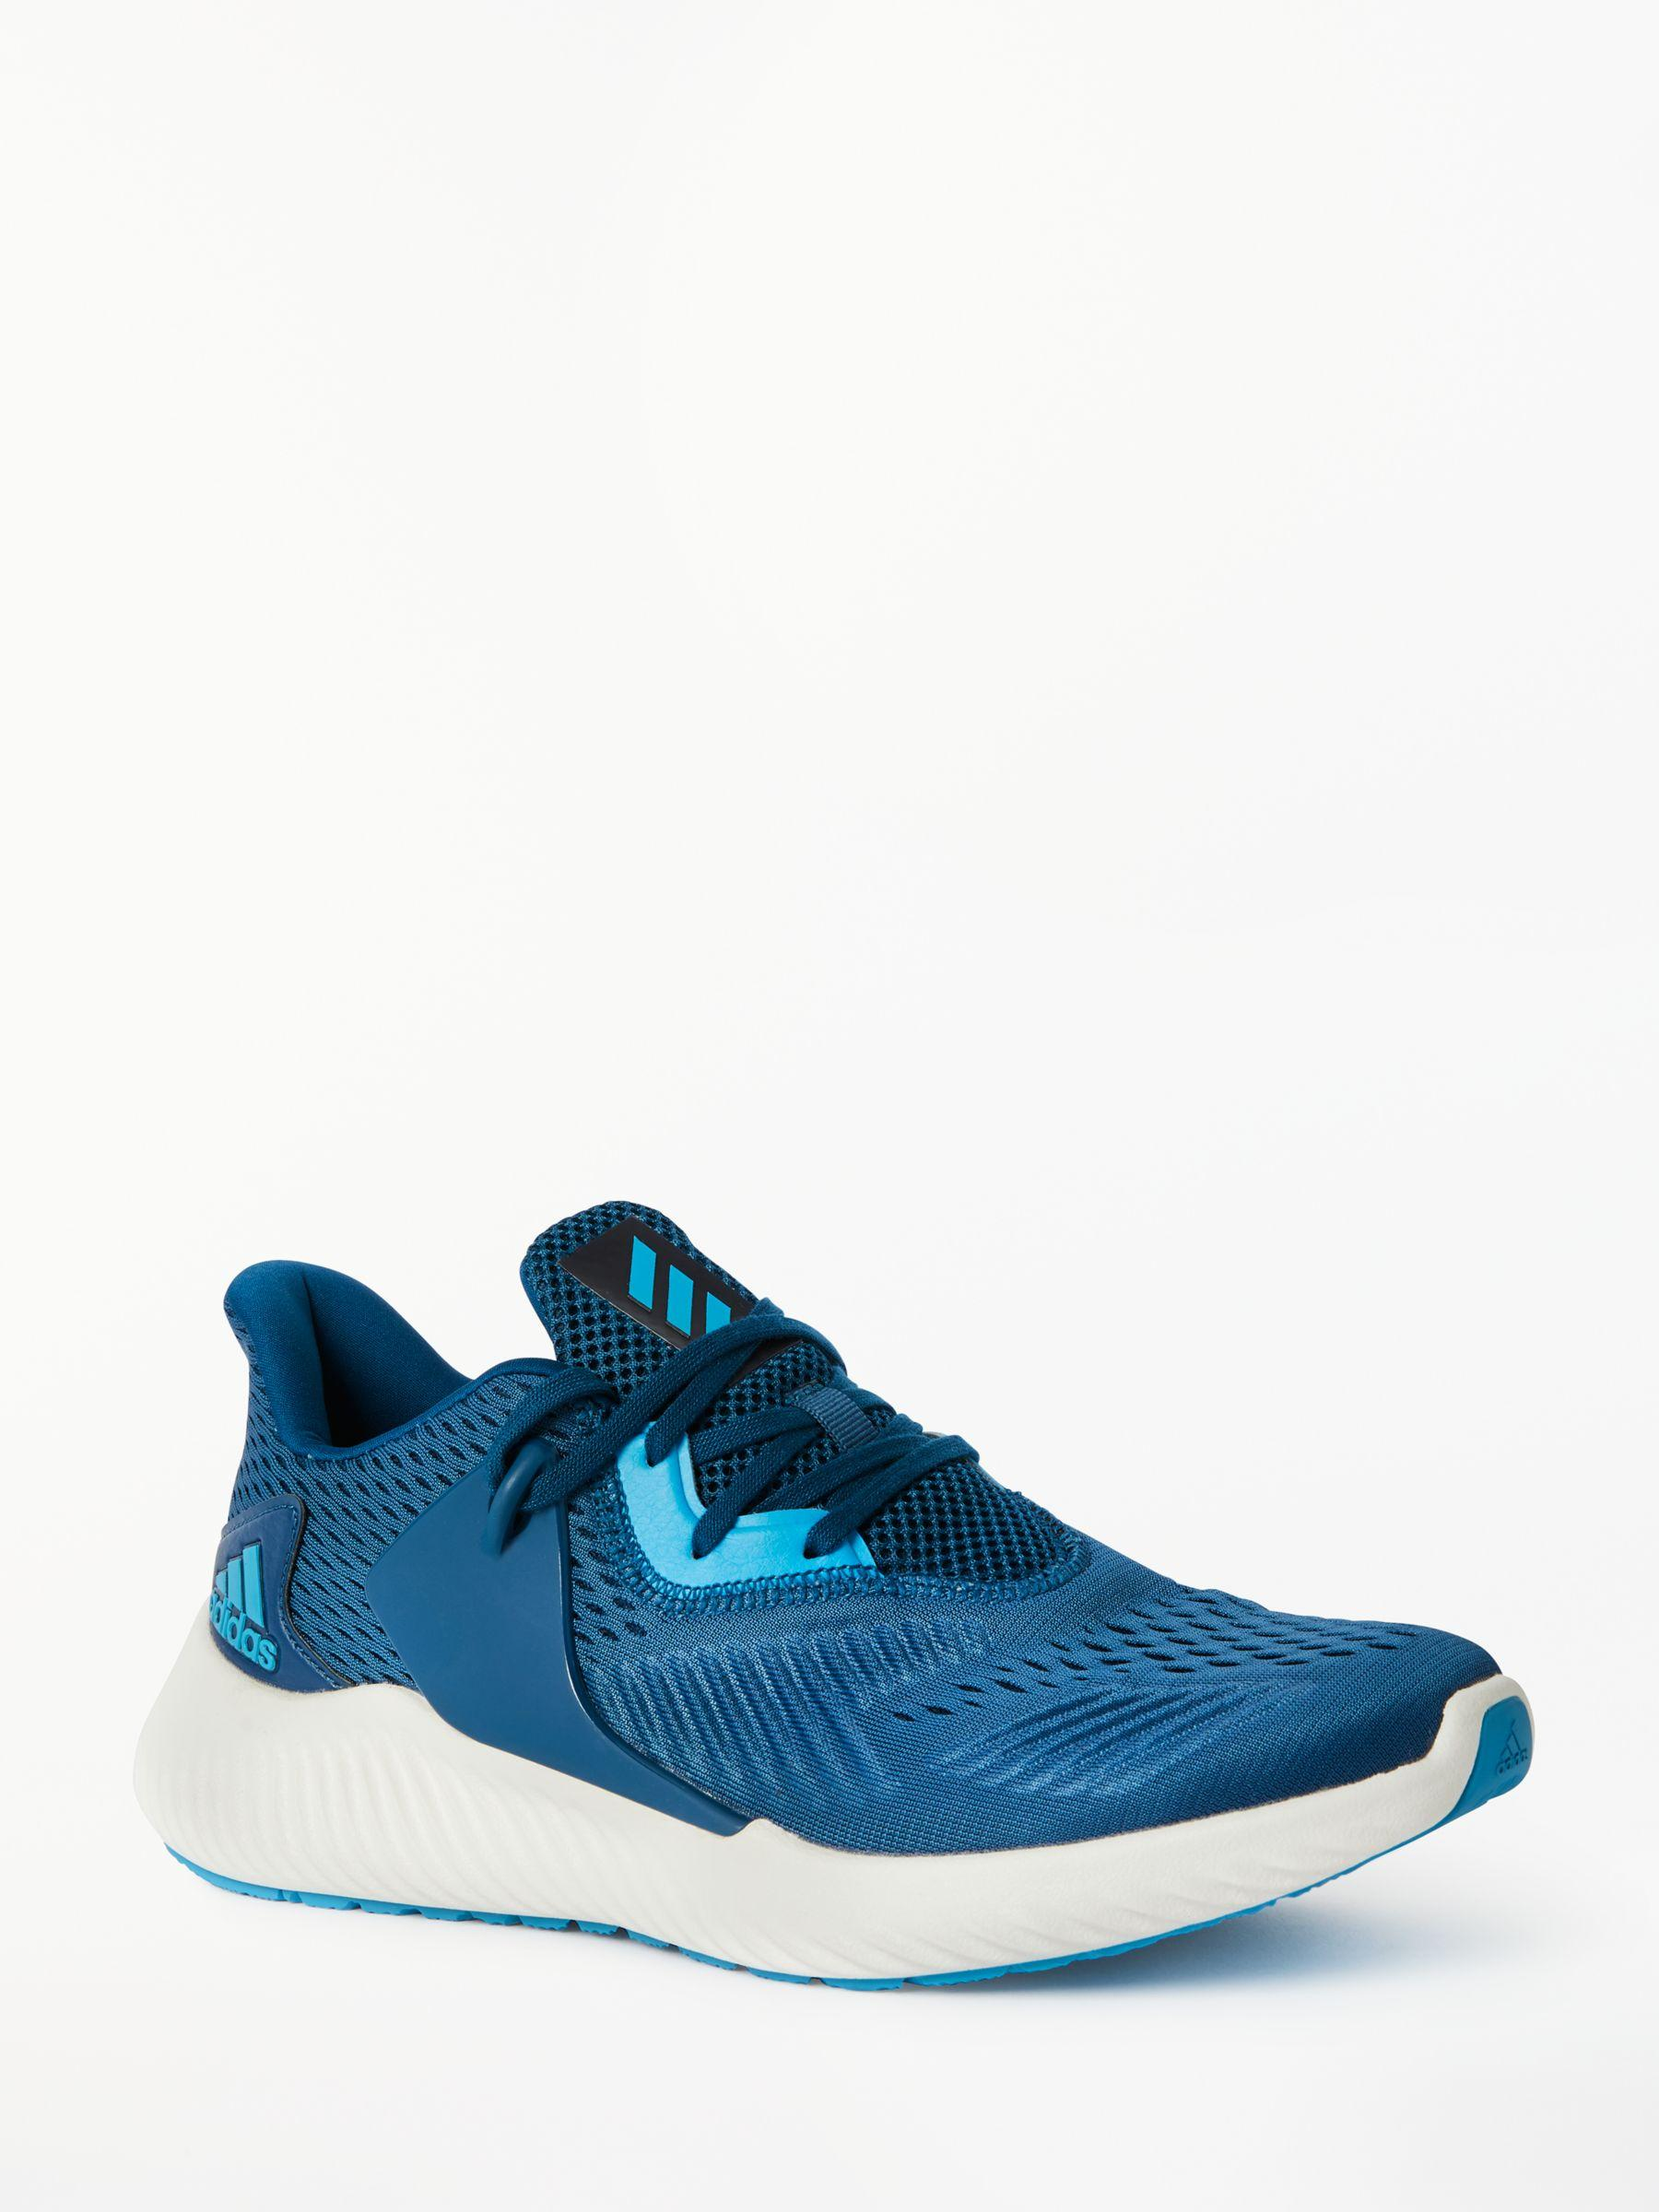 54ab20aa7 adidas Alphabounce Rc 2.0 Men s Running Shoes in Blue for Men - Lyst